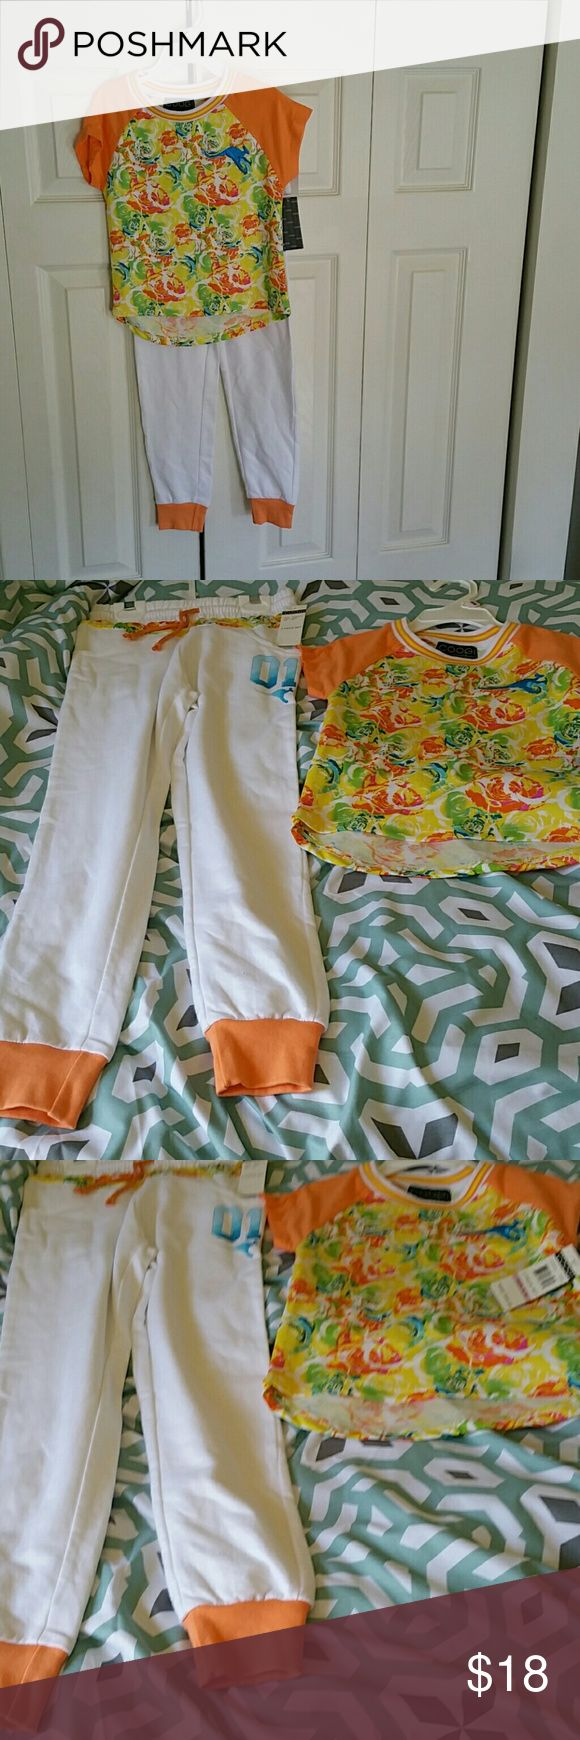 Coogi girls 2-piece sets Coogi girls size 5/6,6x  two piece sets.Floral top with back logo ,white pant  with elastic waistband and ankles,3 pockets.Great for active girls who love to run  and play.New with tags.This is from a smoke and pet-free home. COOGI Matching Sets